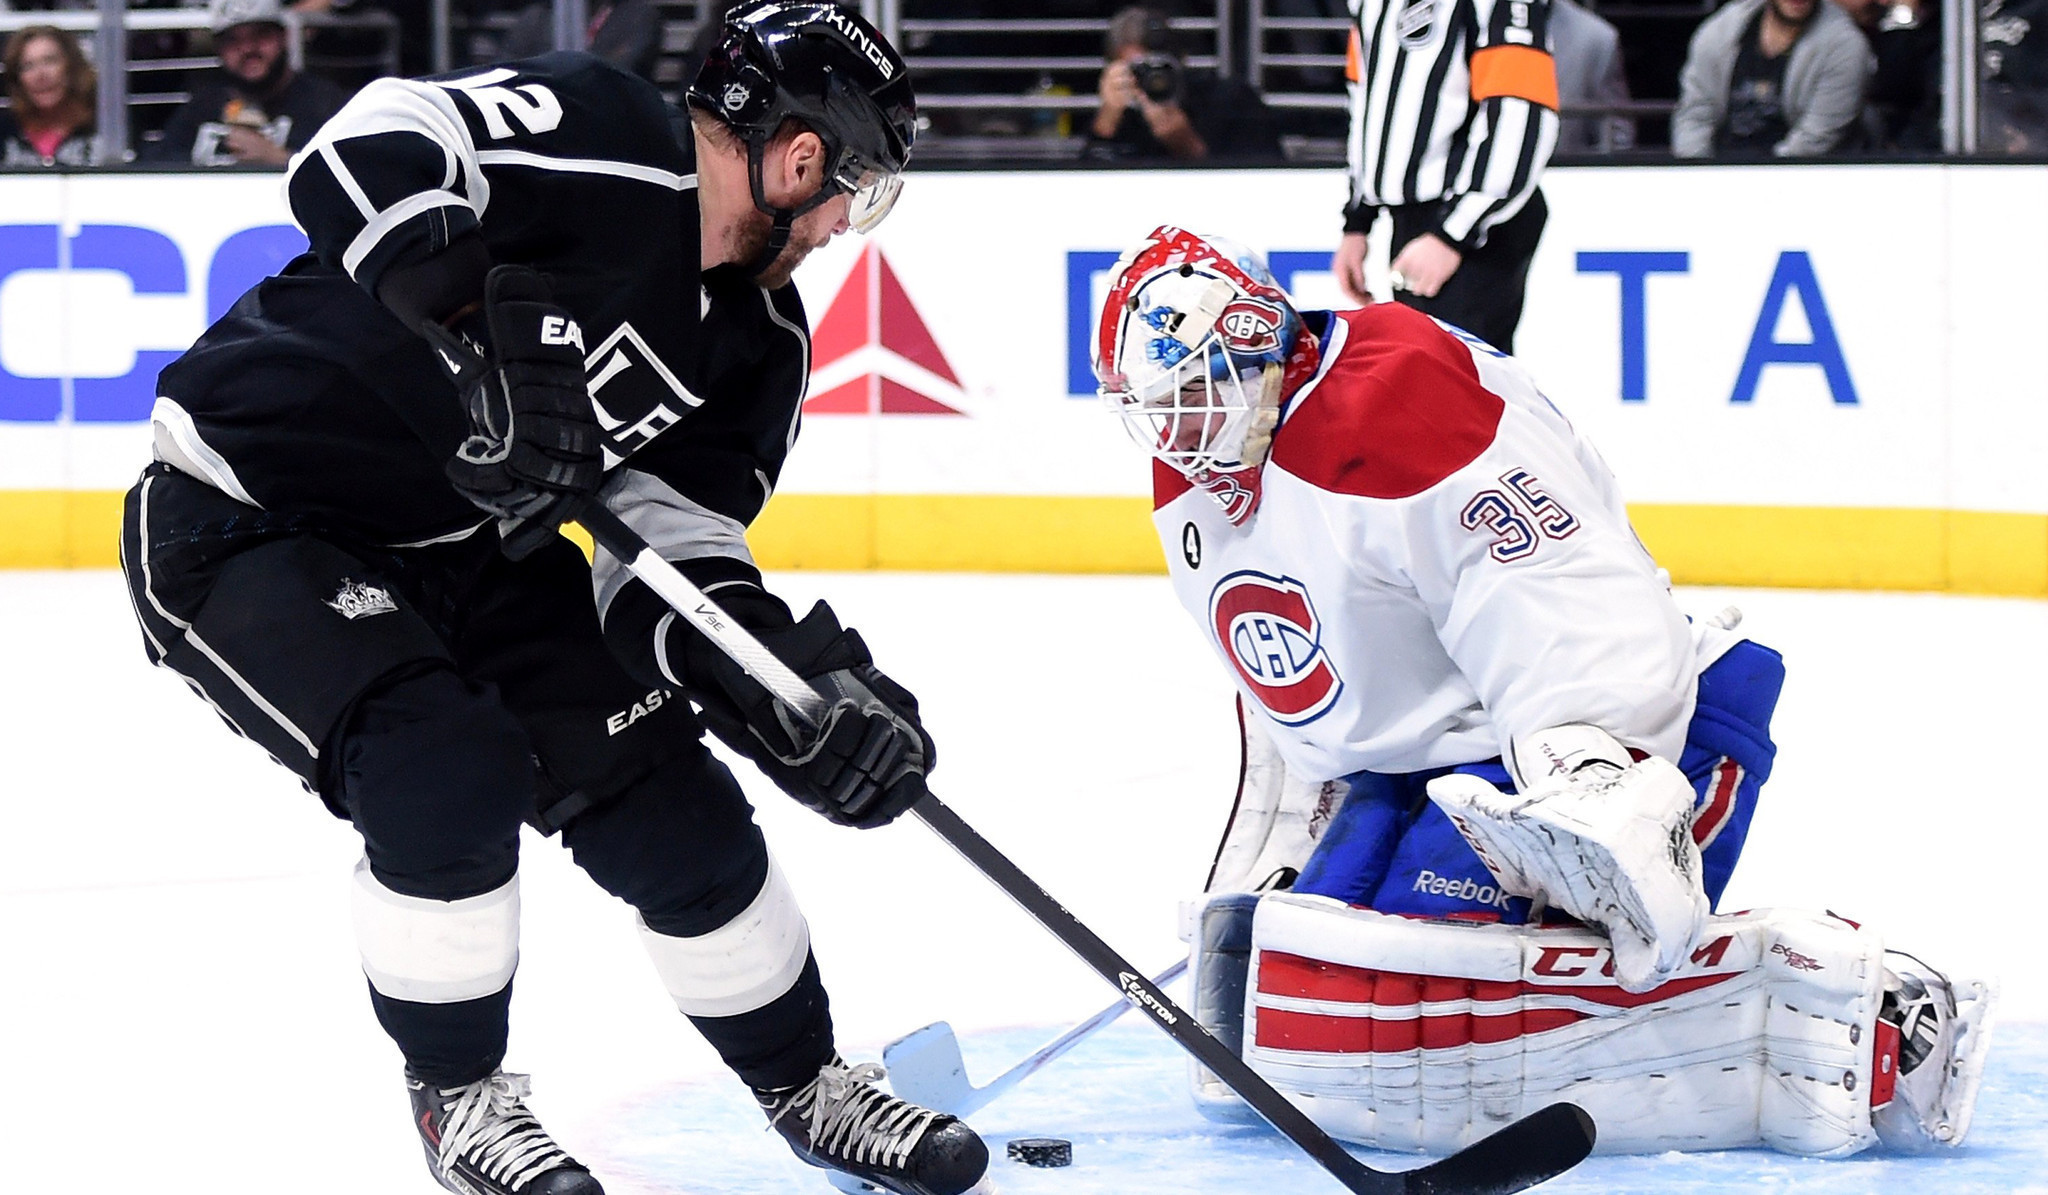 Up next for Kings: Saturday vs. Pittsburgh Penguins